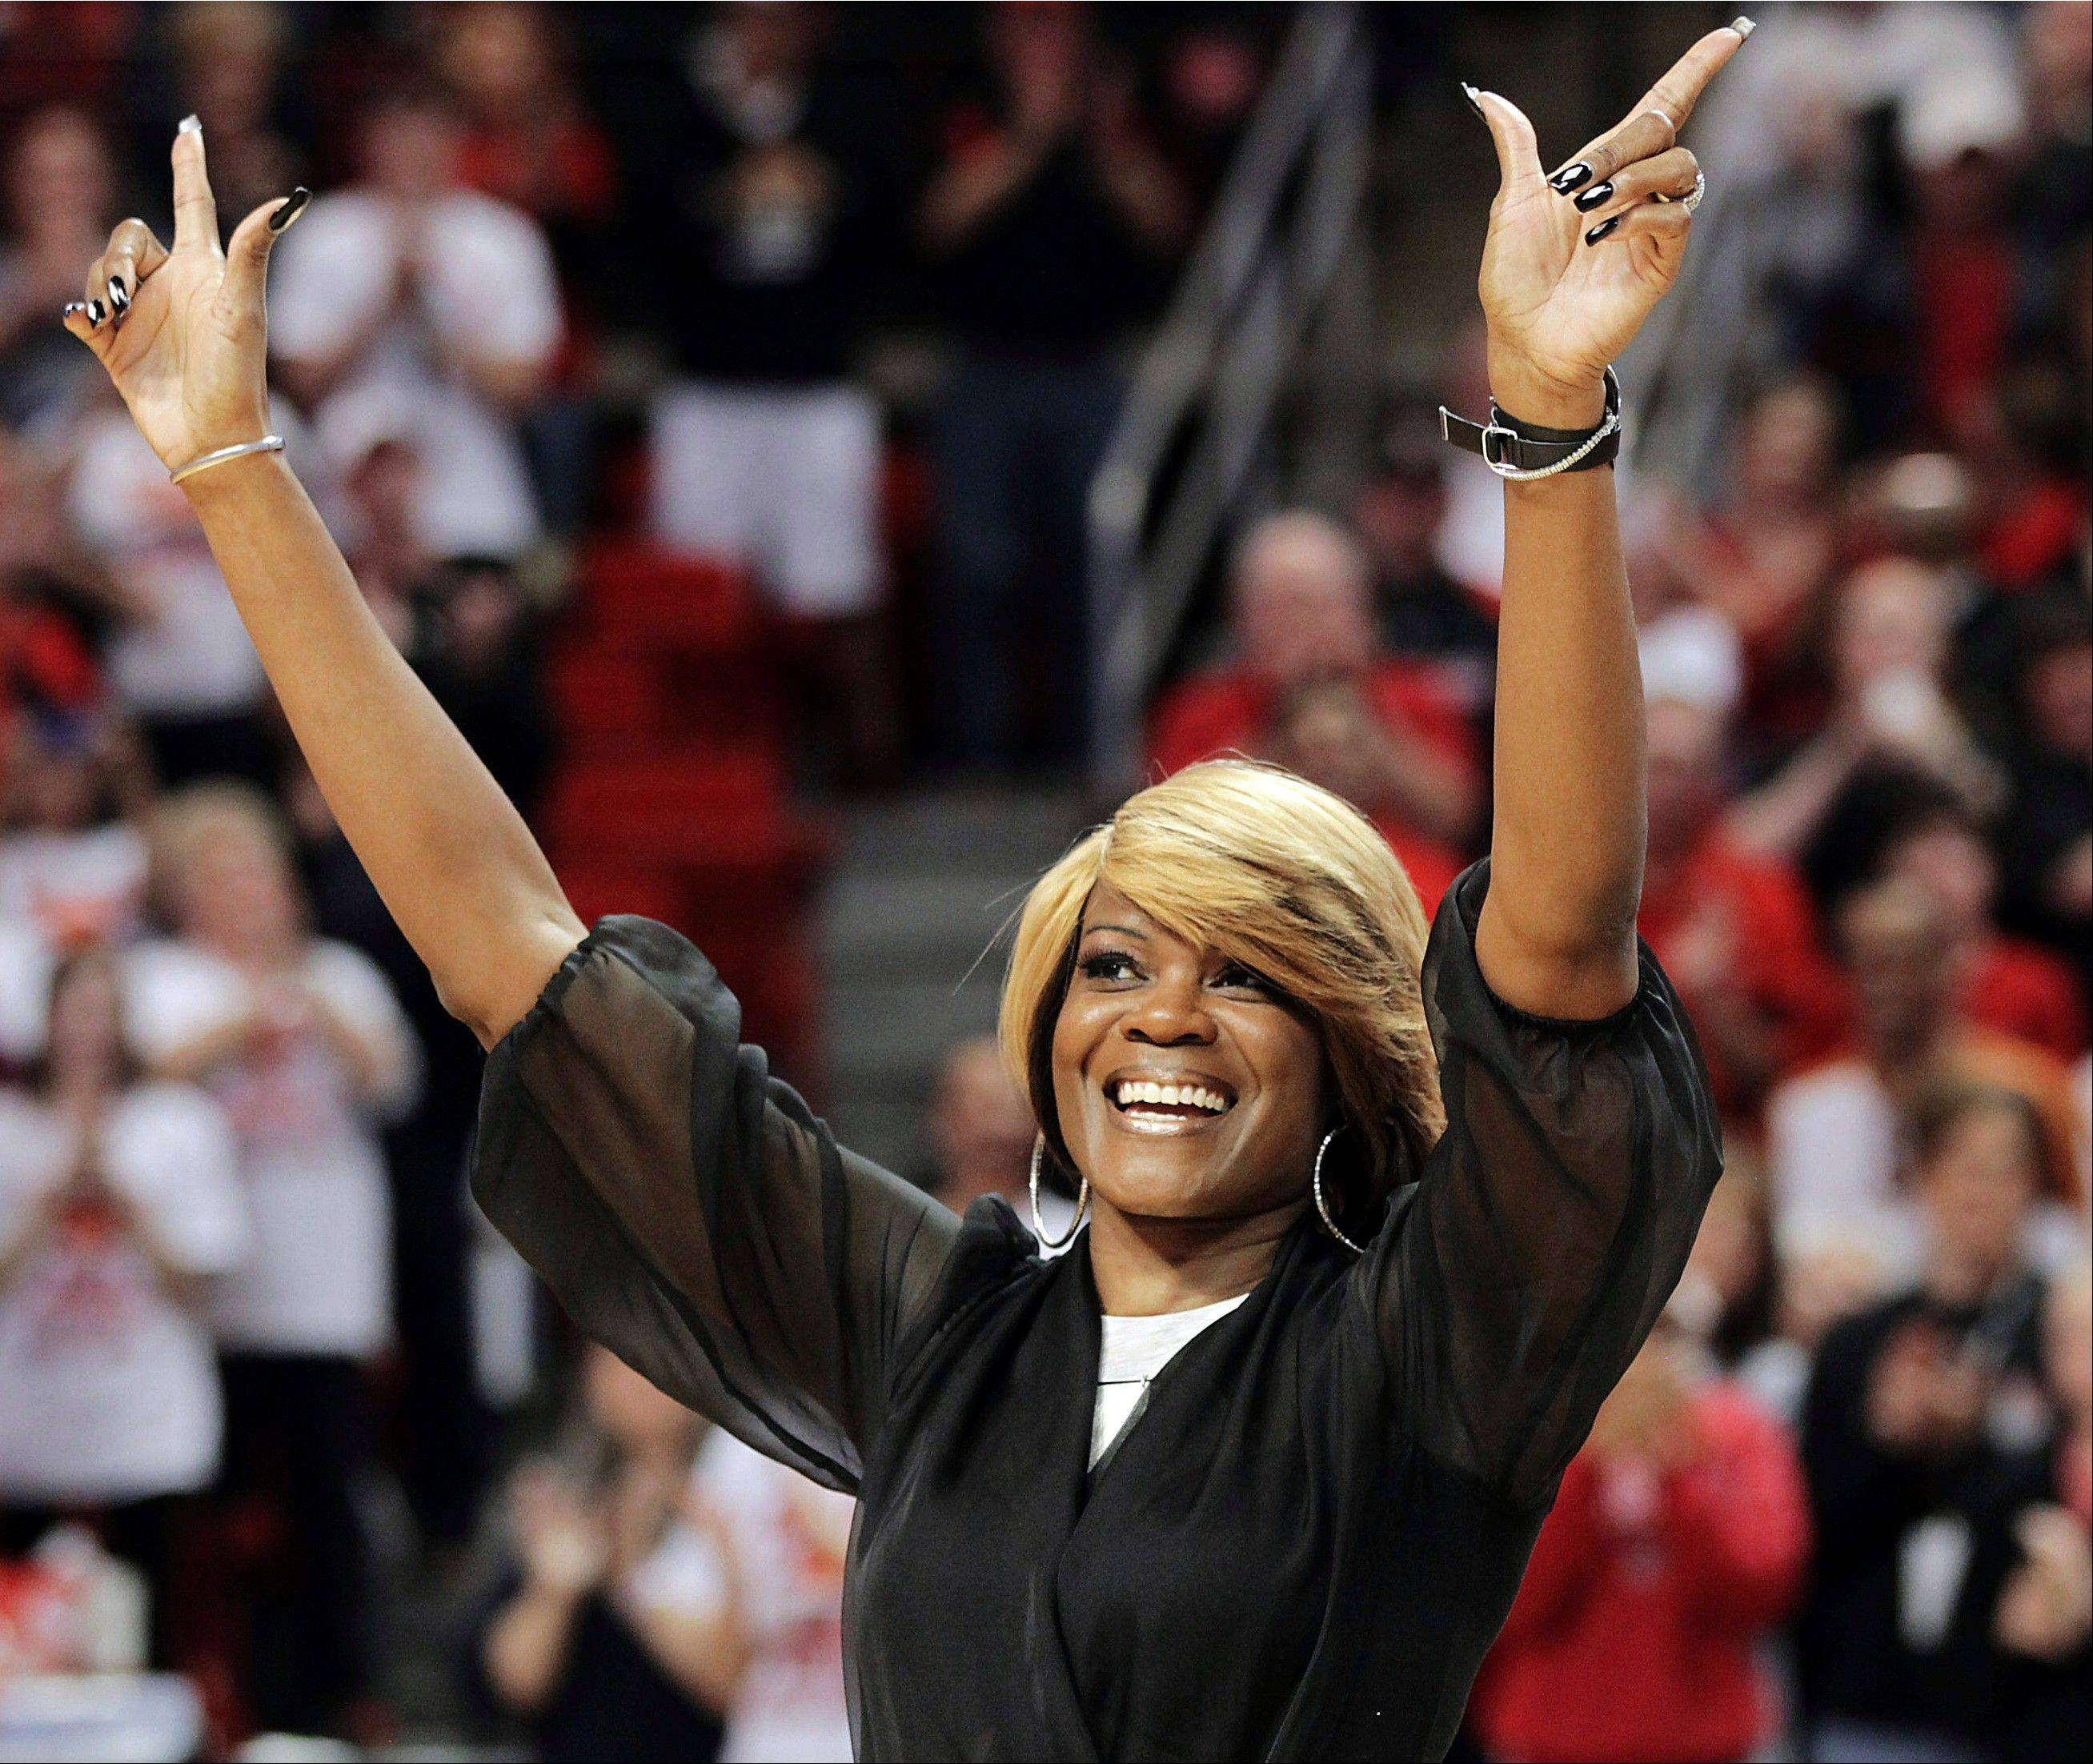 Sheryl Swoopes acknowledges the crowd during a ceremony earlier this year to honor the 1993 Texas Tech national championship team at an NCAA college basketball game between Texas Tech and Texas in Lubbock, Texas. The WNBA great, one of the league's first stars, is now the coach of the Loyola University Ramblers.